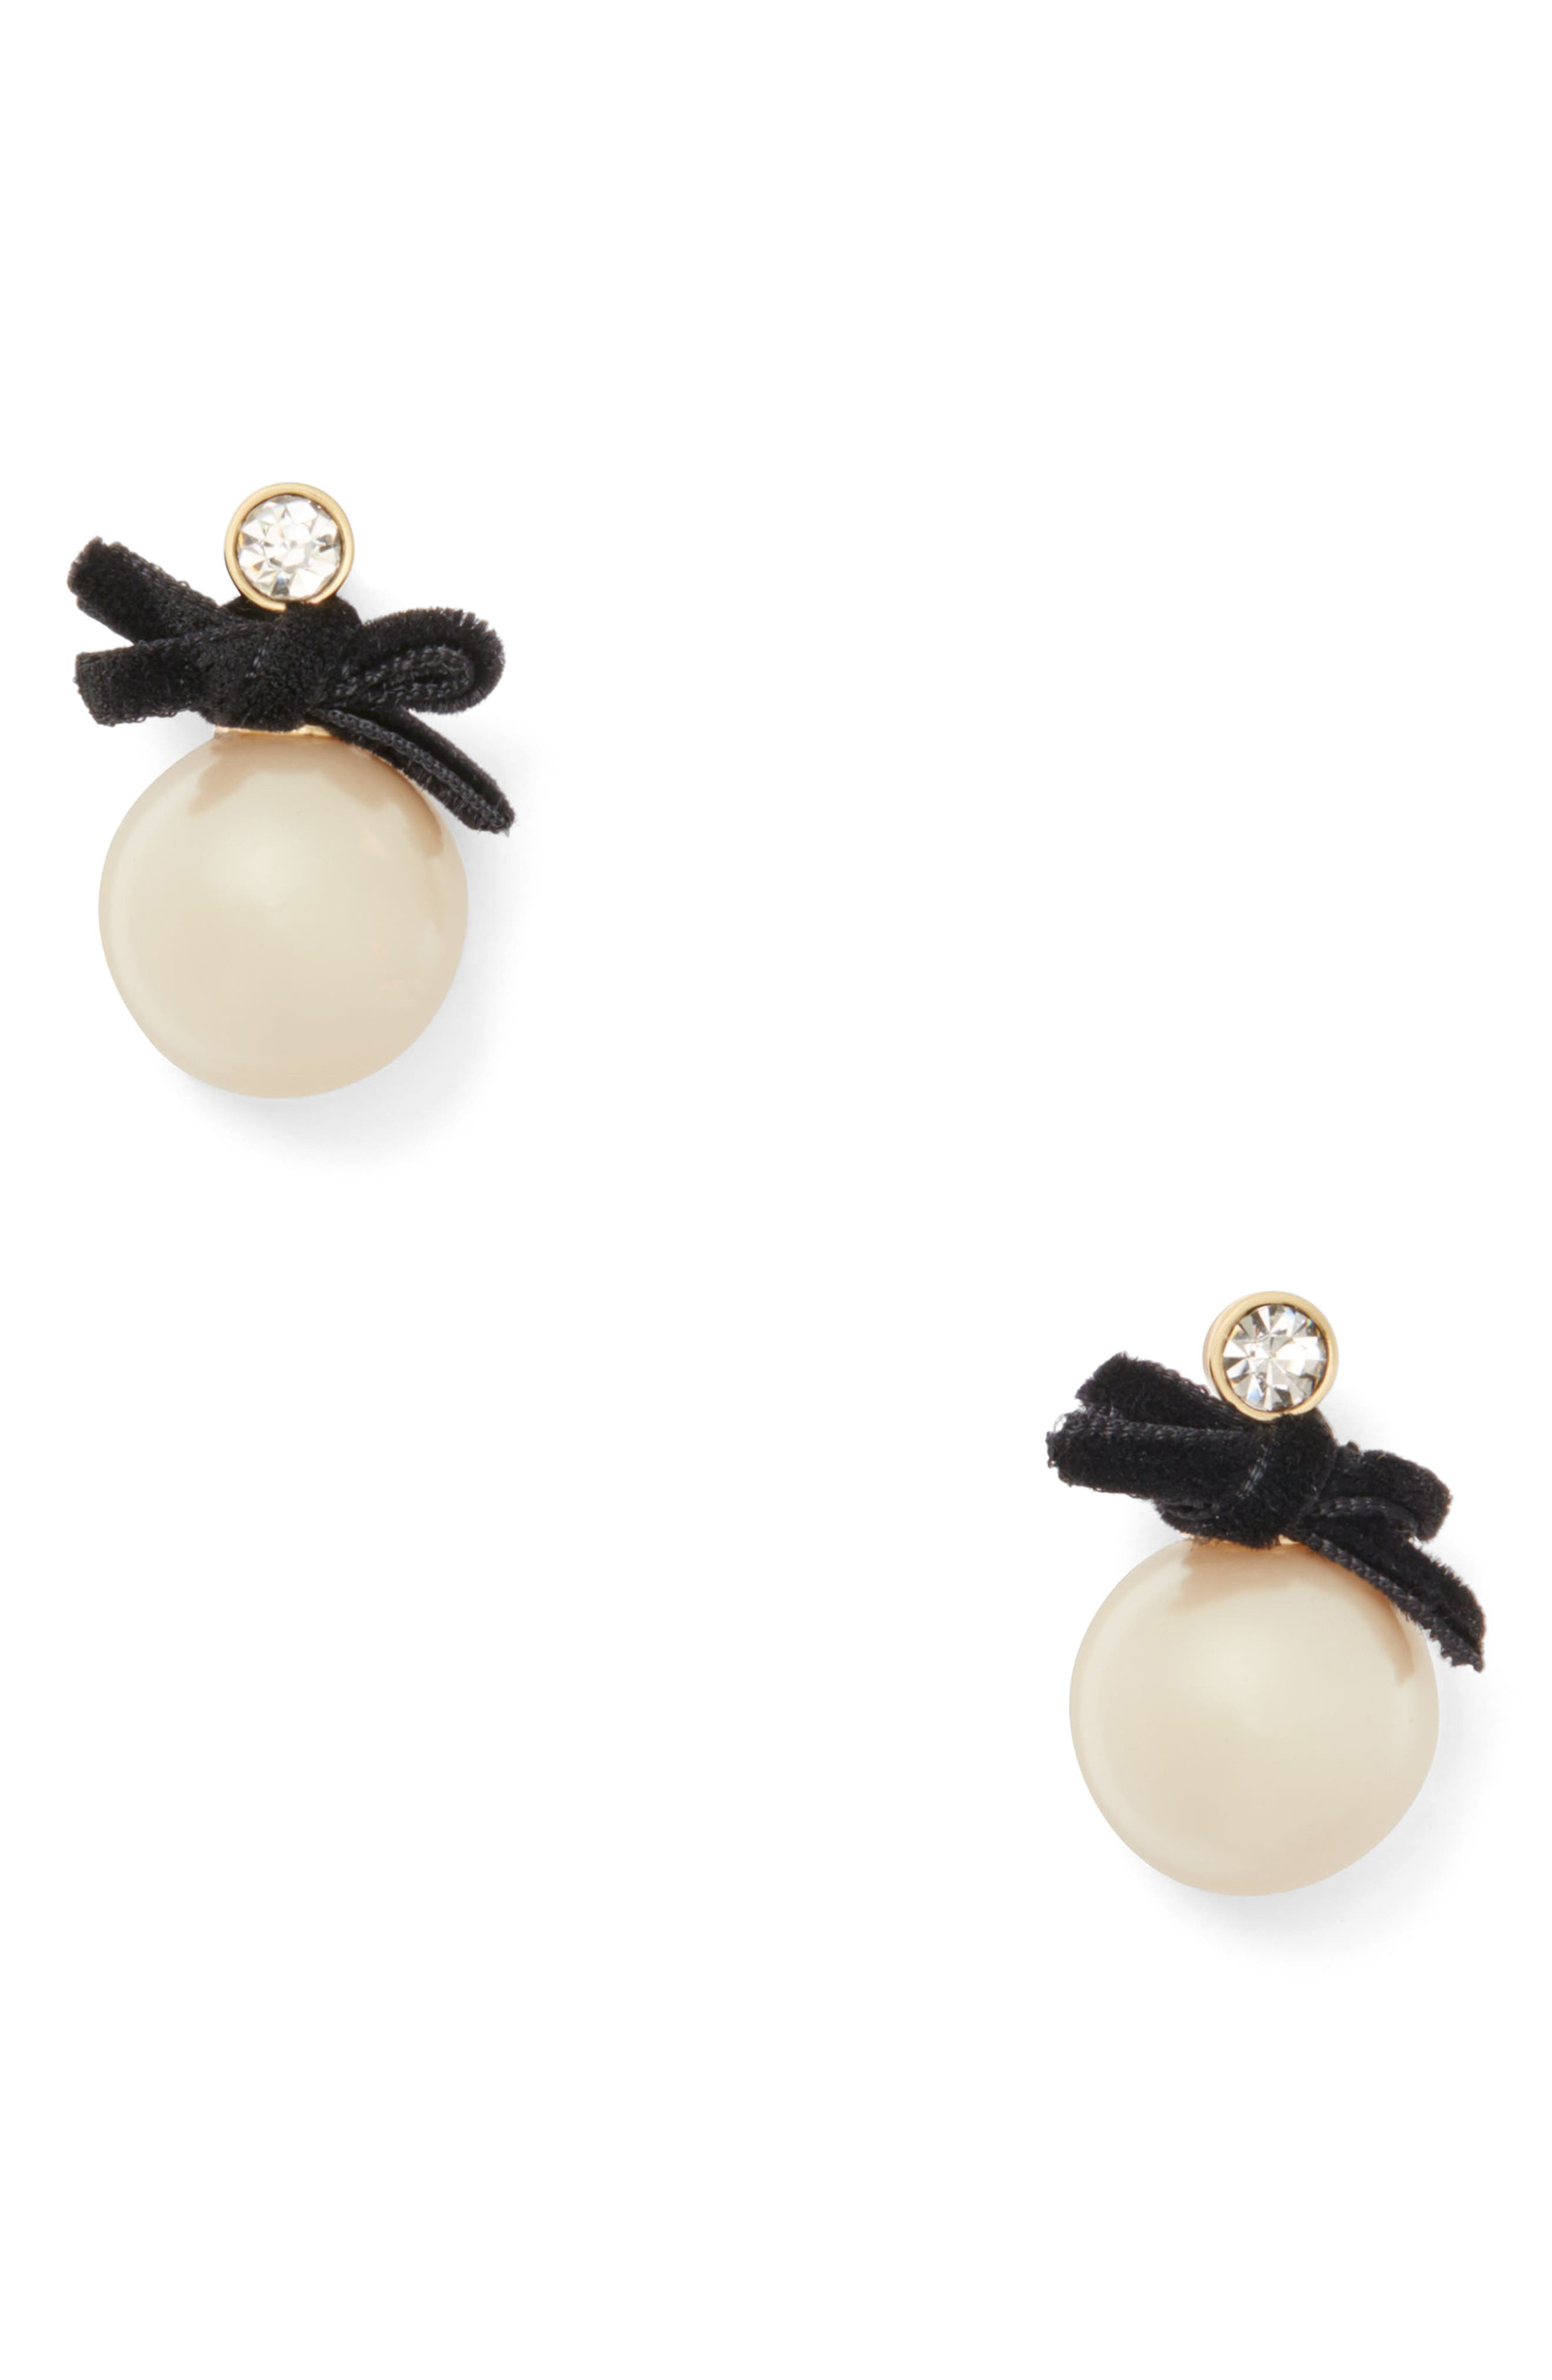 KATE SPADE NEW YORK girls in pearls imitation pearl drop earrings